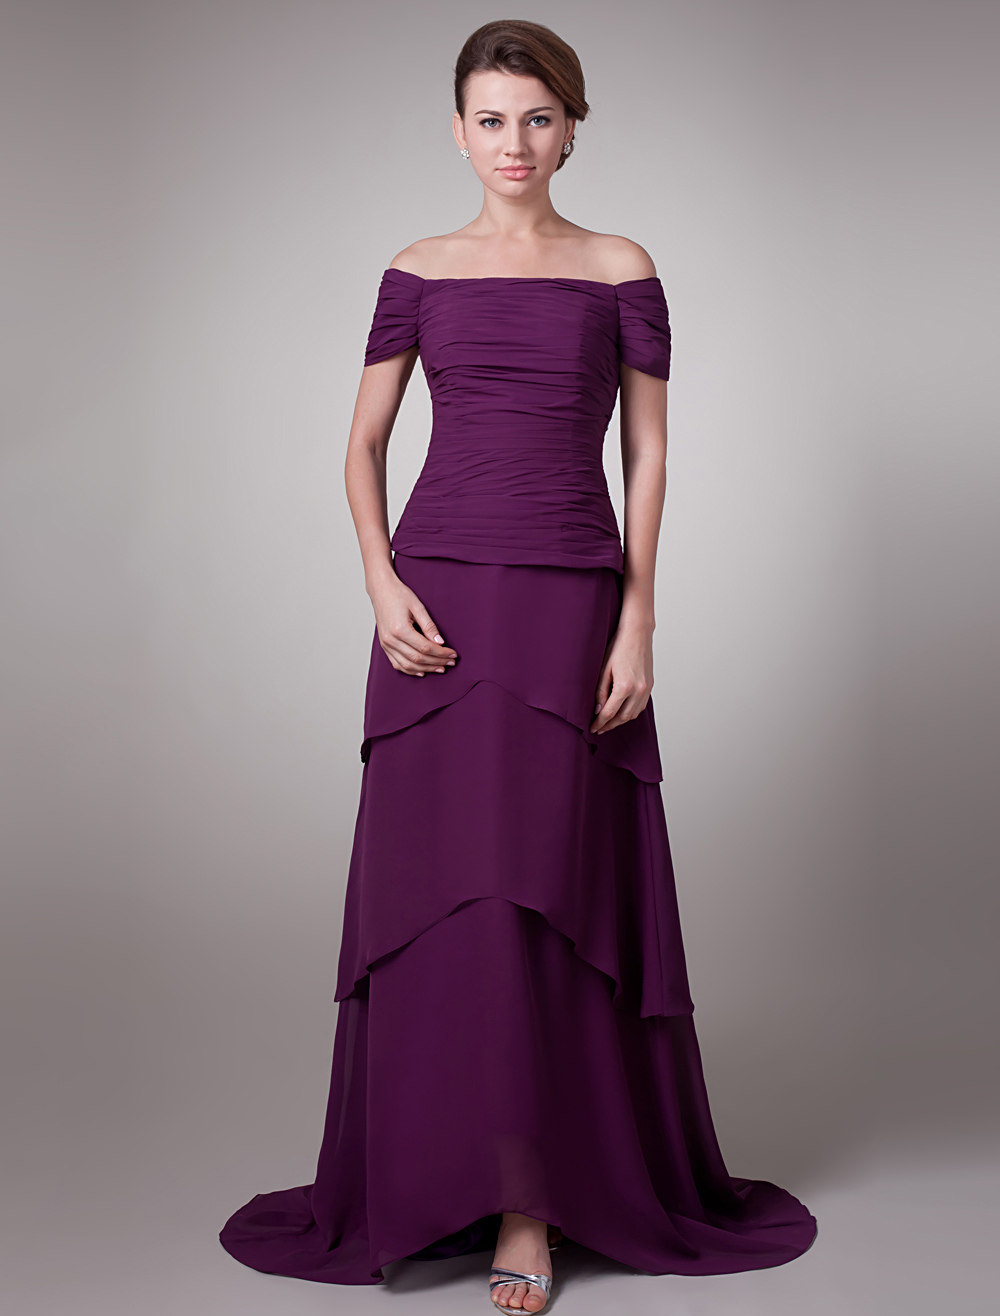 Grape A-line Off-The-Shoulder Pleated Short Sleeves Amazing Bridal Mother Dress